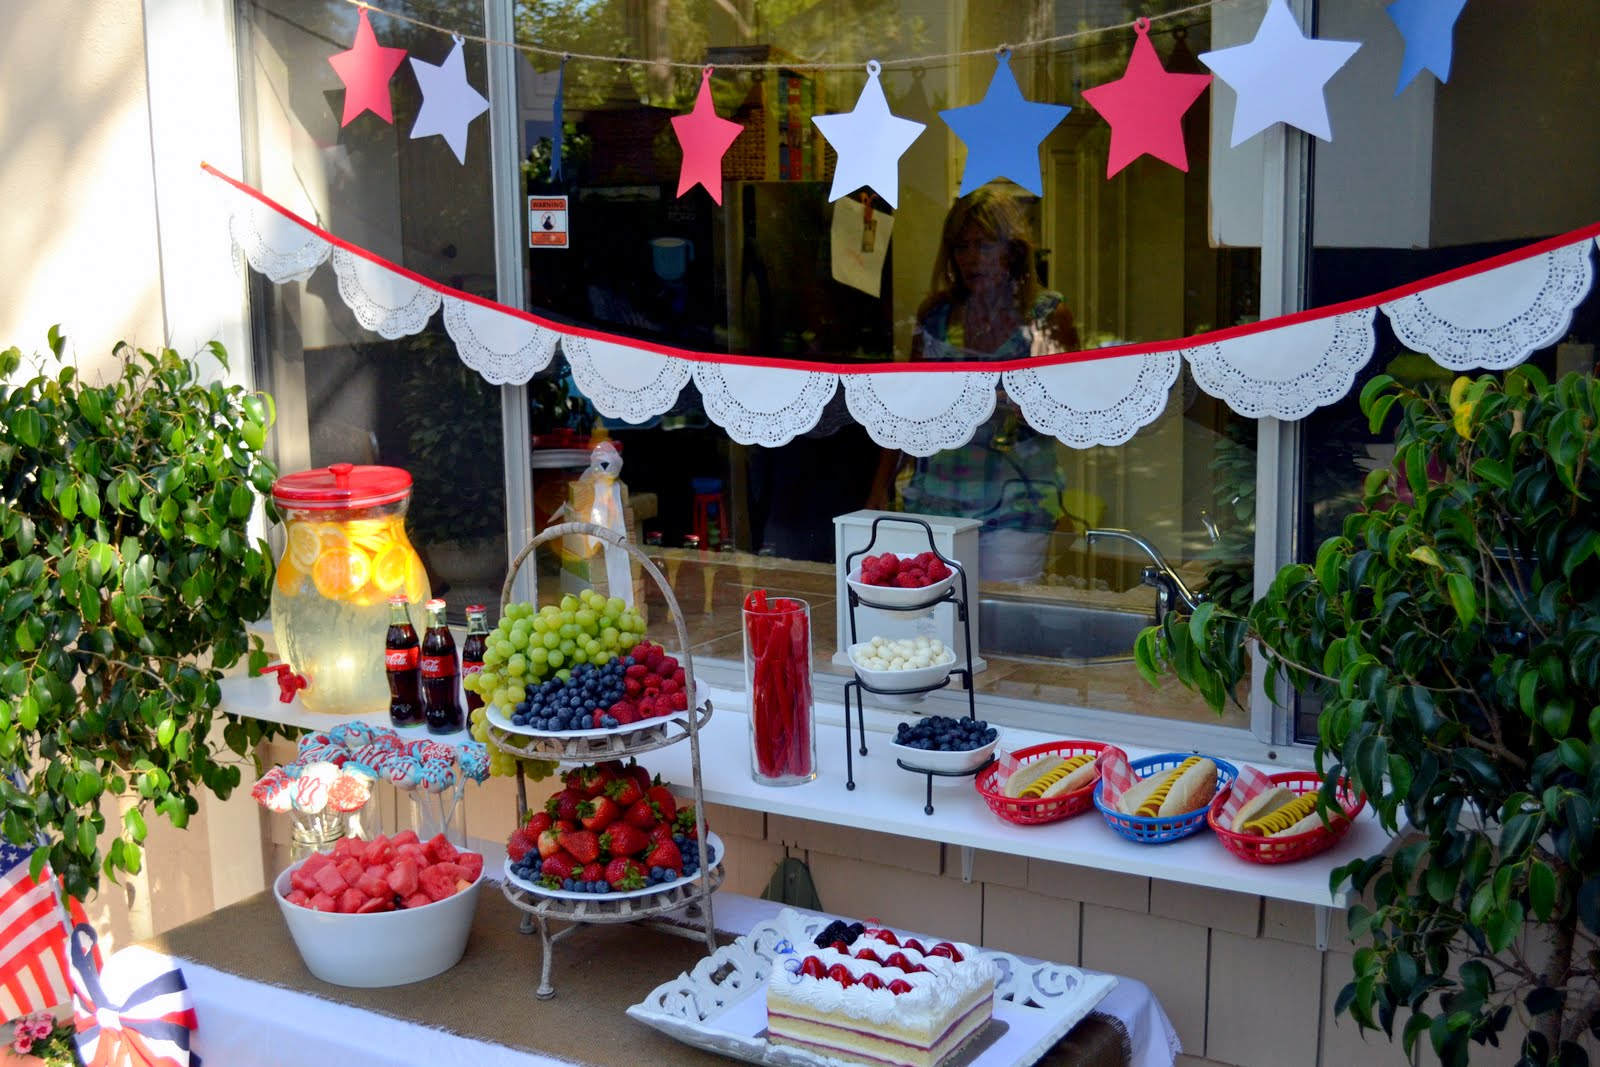 4Th Of July Backyard Party Ideas fourth of july backyard party - celebrate - little miss momma